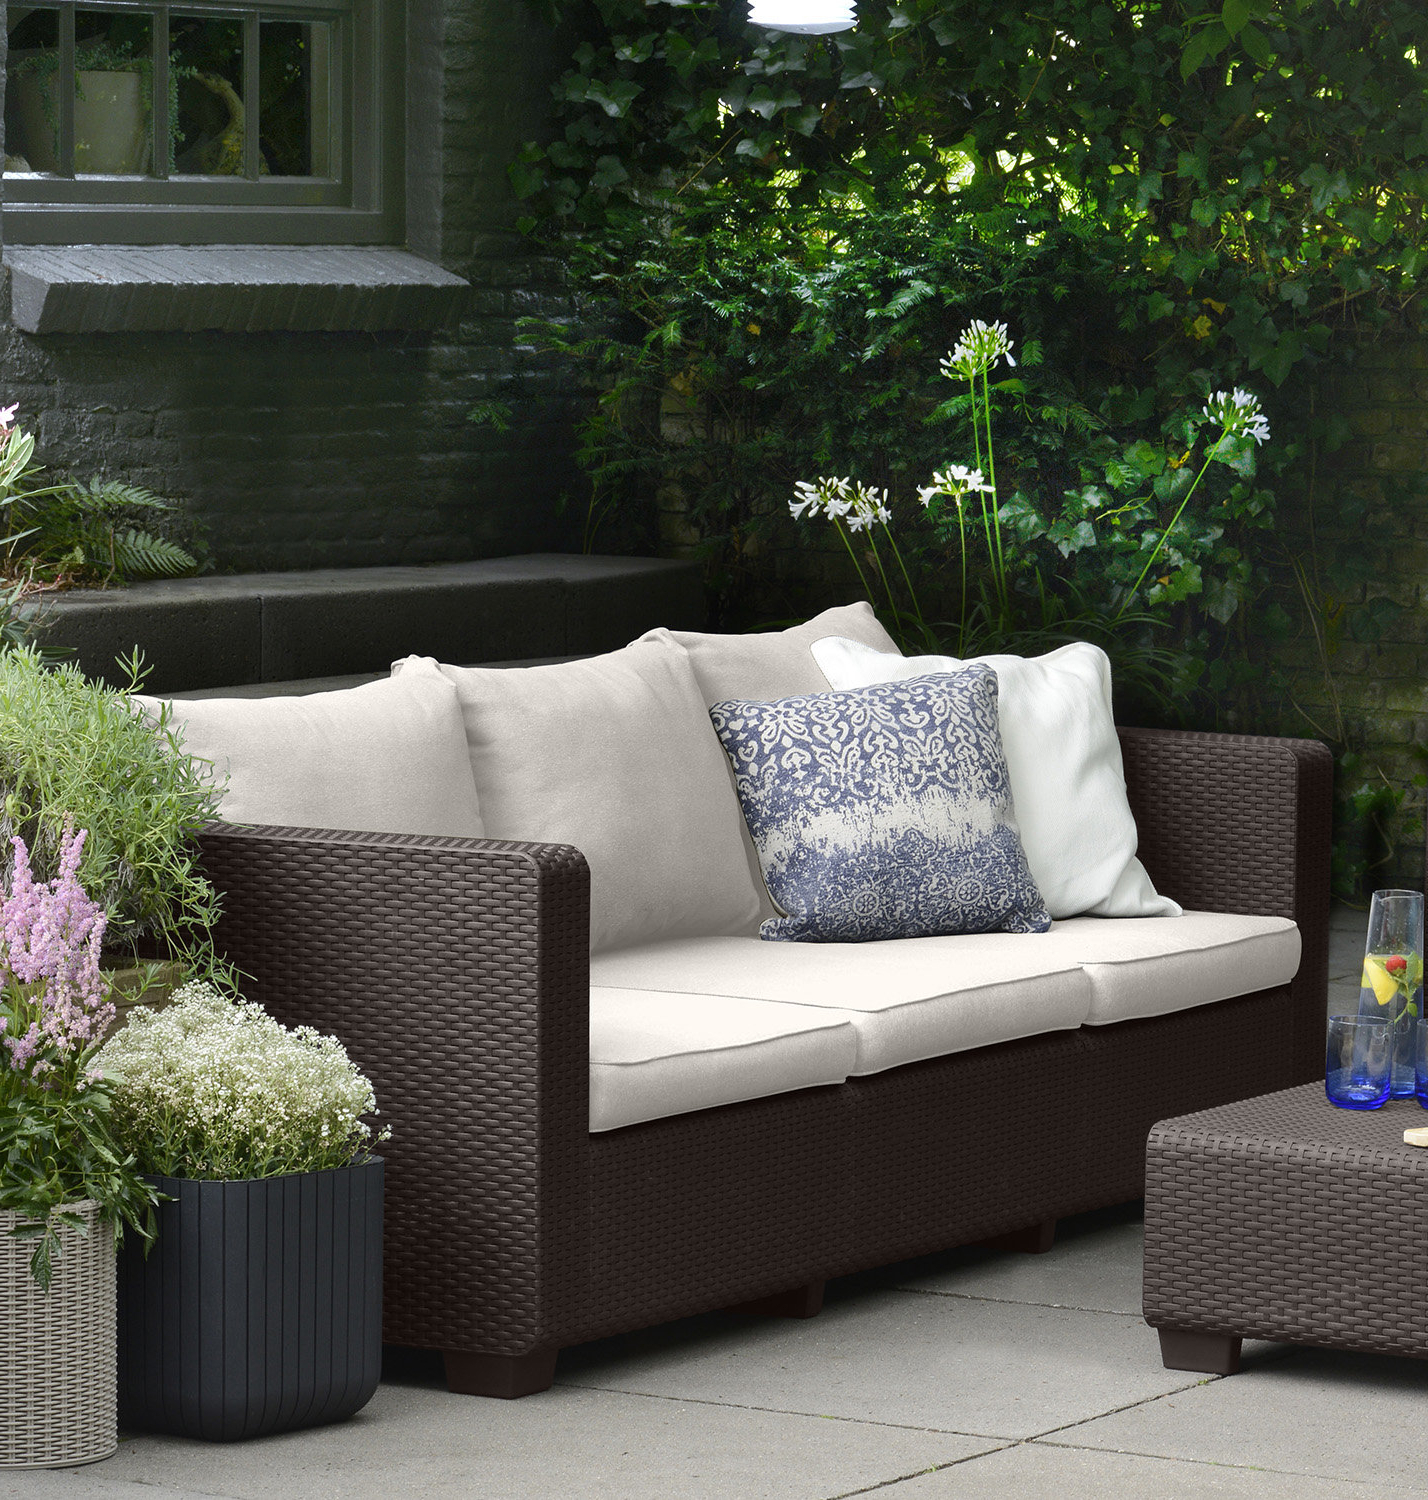 Fashionable Halloran Patio Sofa With Sunbrella Cushions Throughout Rowley Patio Sofas Set With Cushions (View 13 of 20)